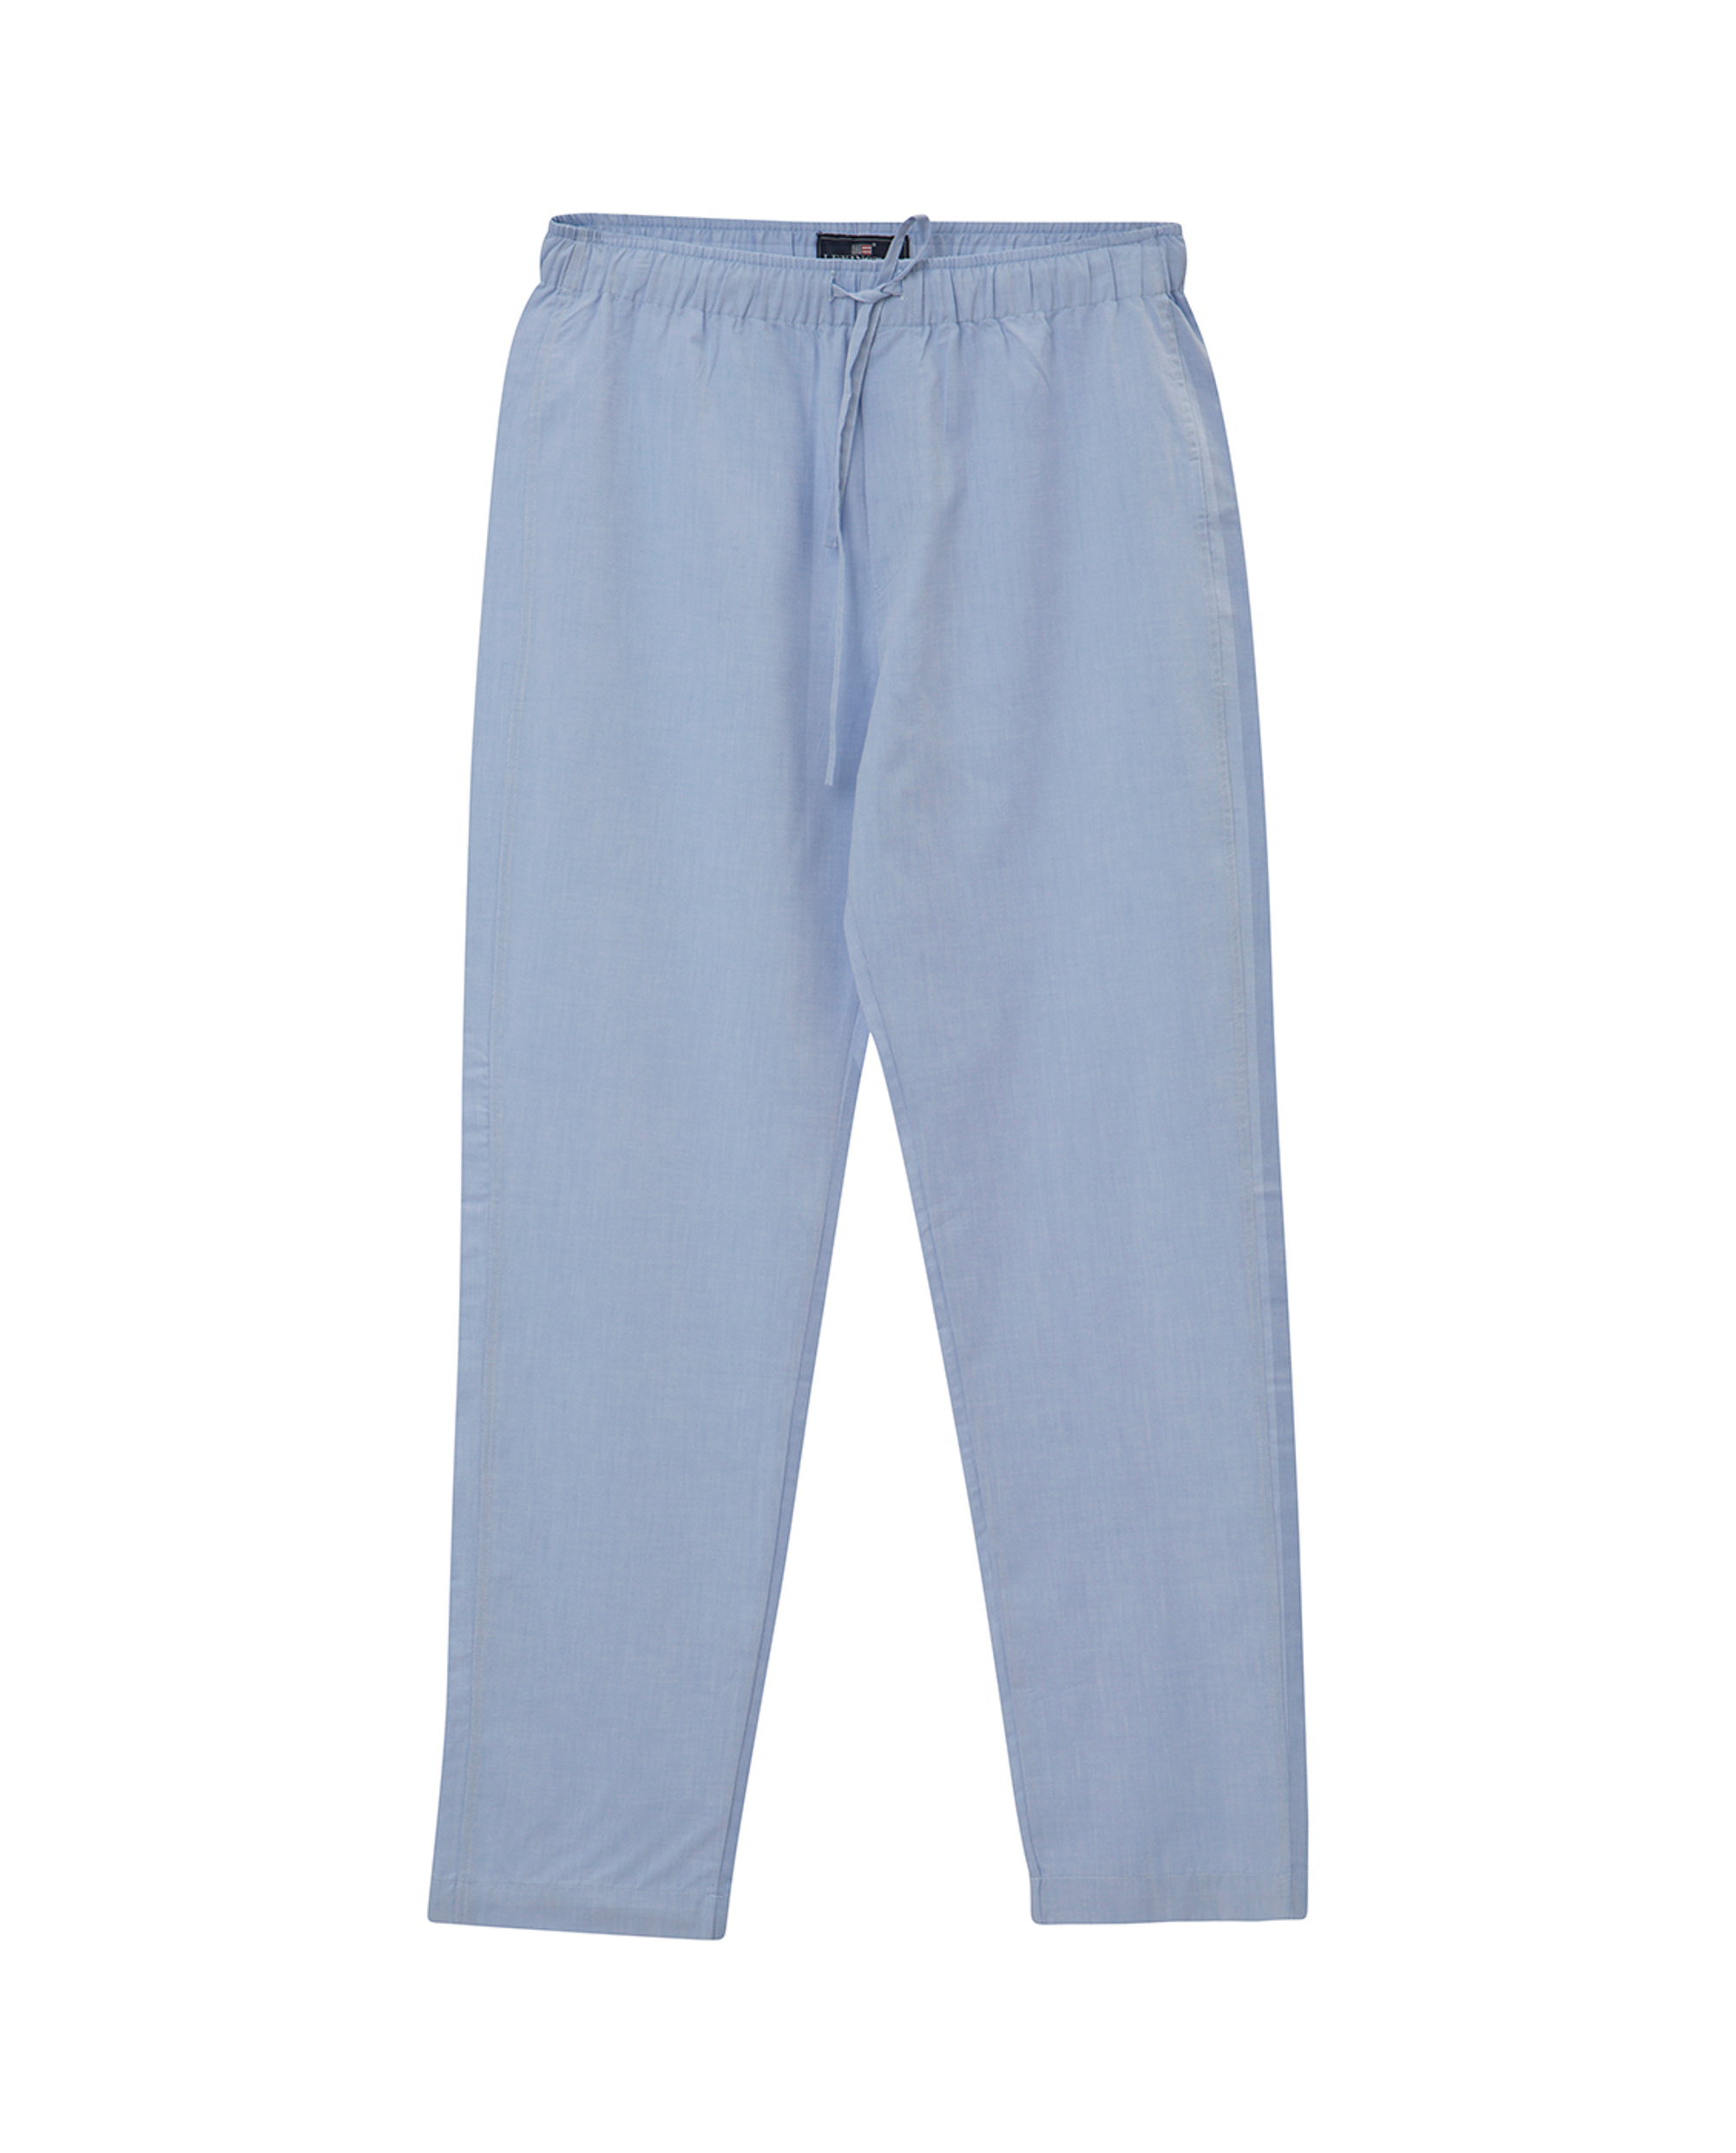 Alexis Unisex Pajama, Light Blue